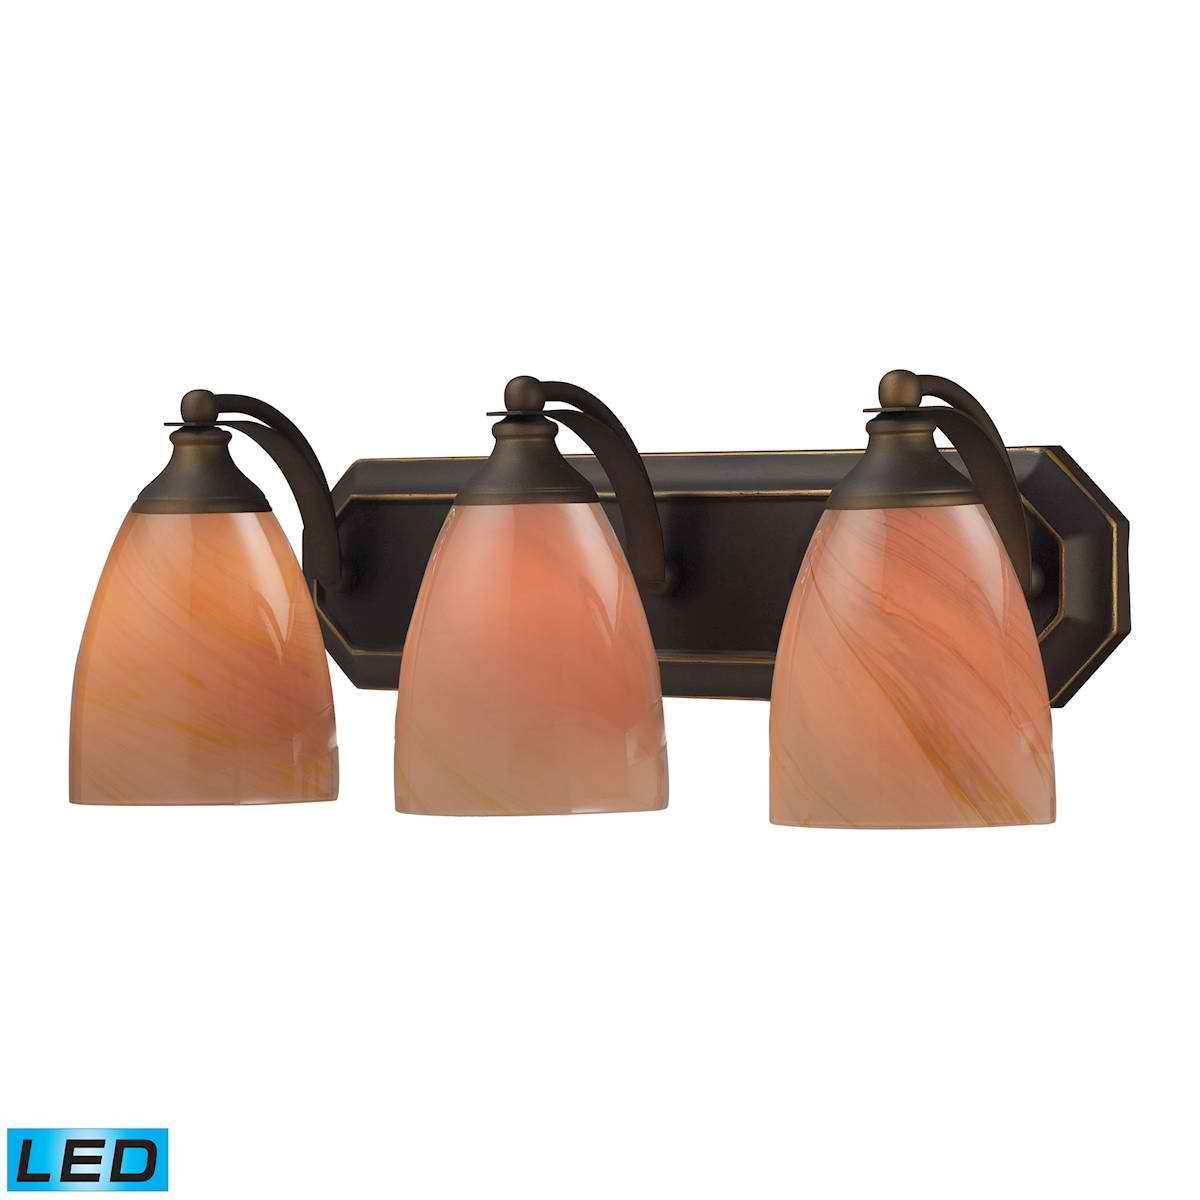 3 Light Vanity in Aged Bronze and Sandy Glass - LED, 800 Lumens (2400 Lumens Total) with Full Scale